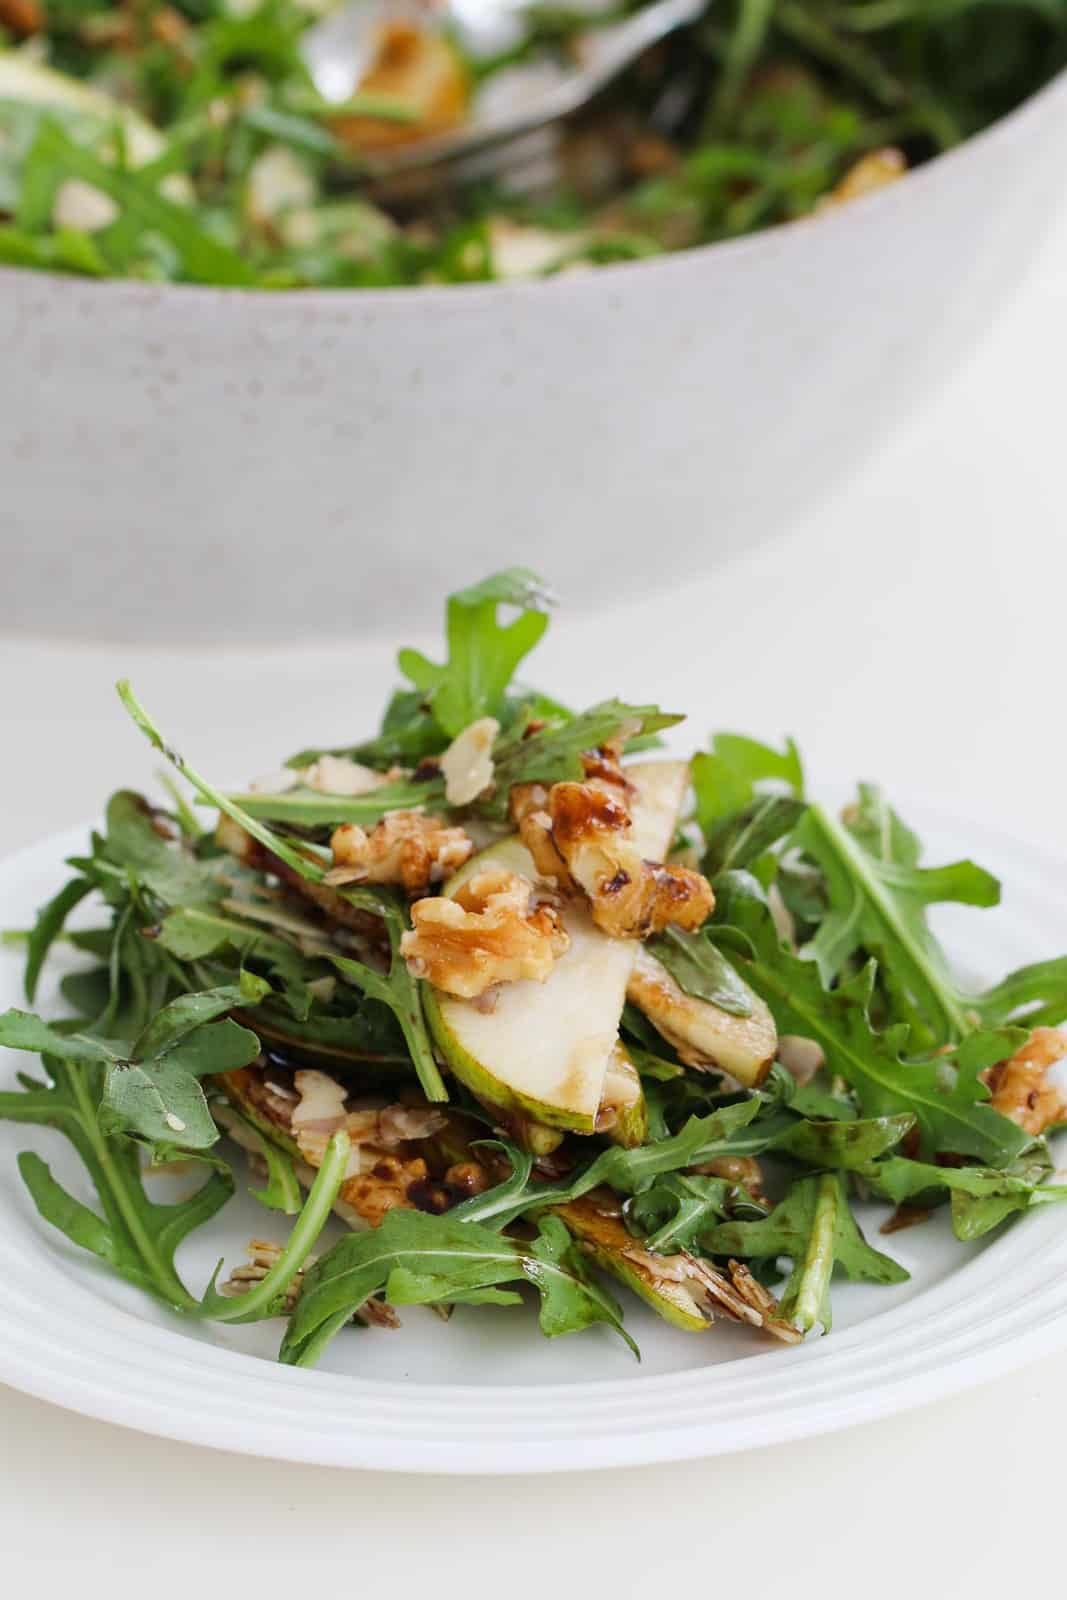 Rocket, pear and walnut salad served on a white plate.